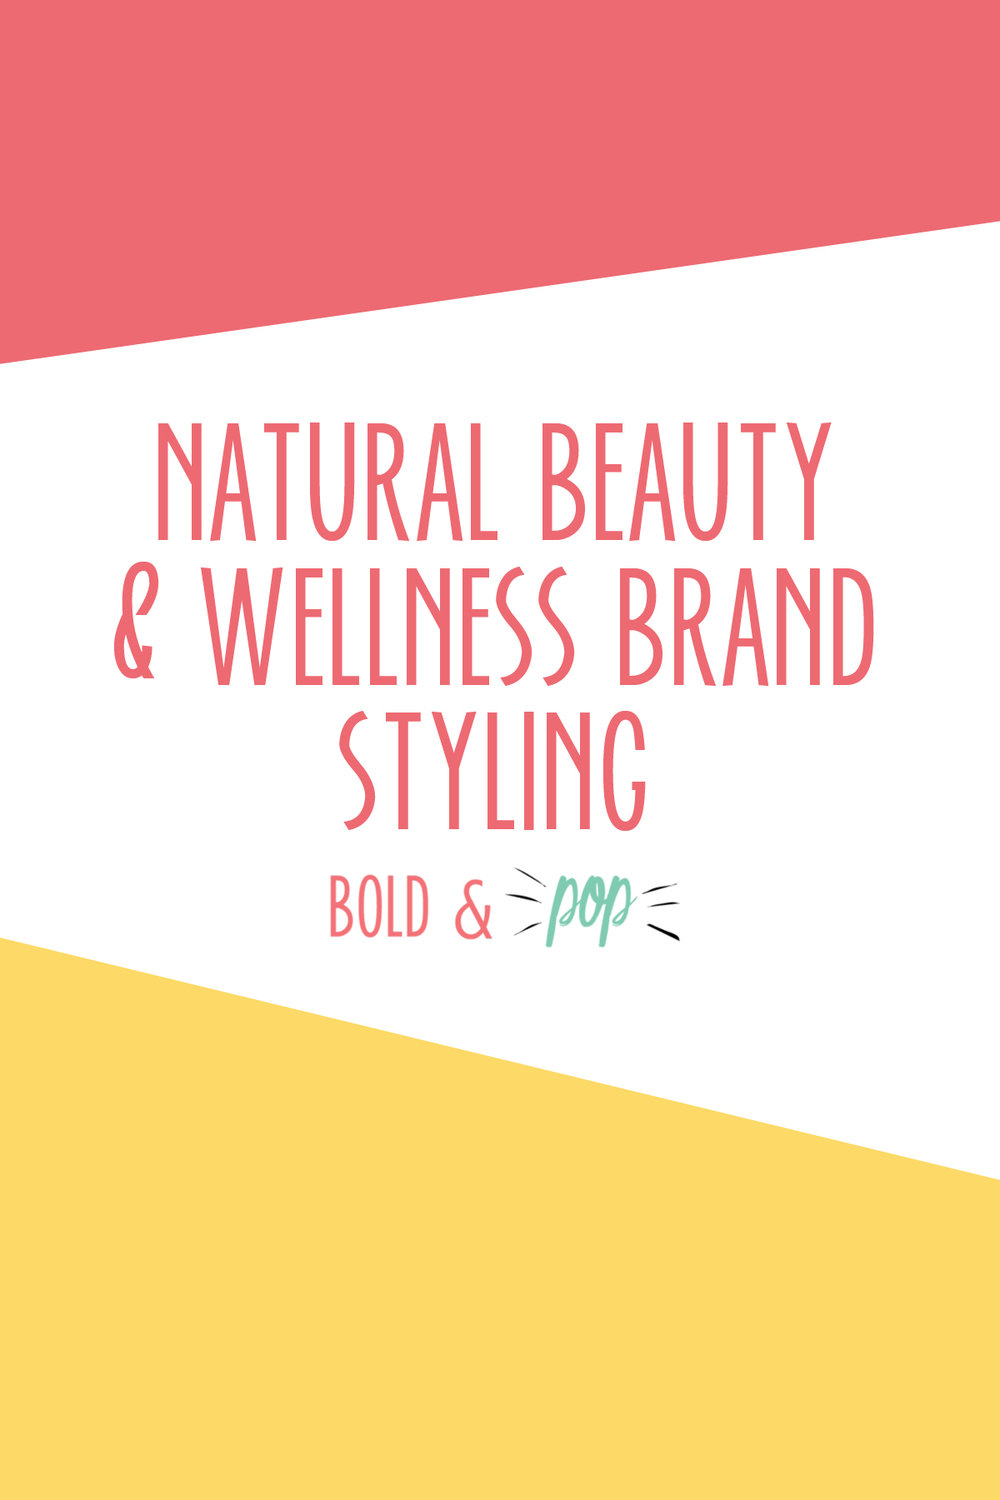 Bold & Pop : Natural Beauty & Wellness Instagram Brand Styling